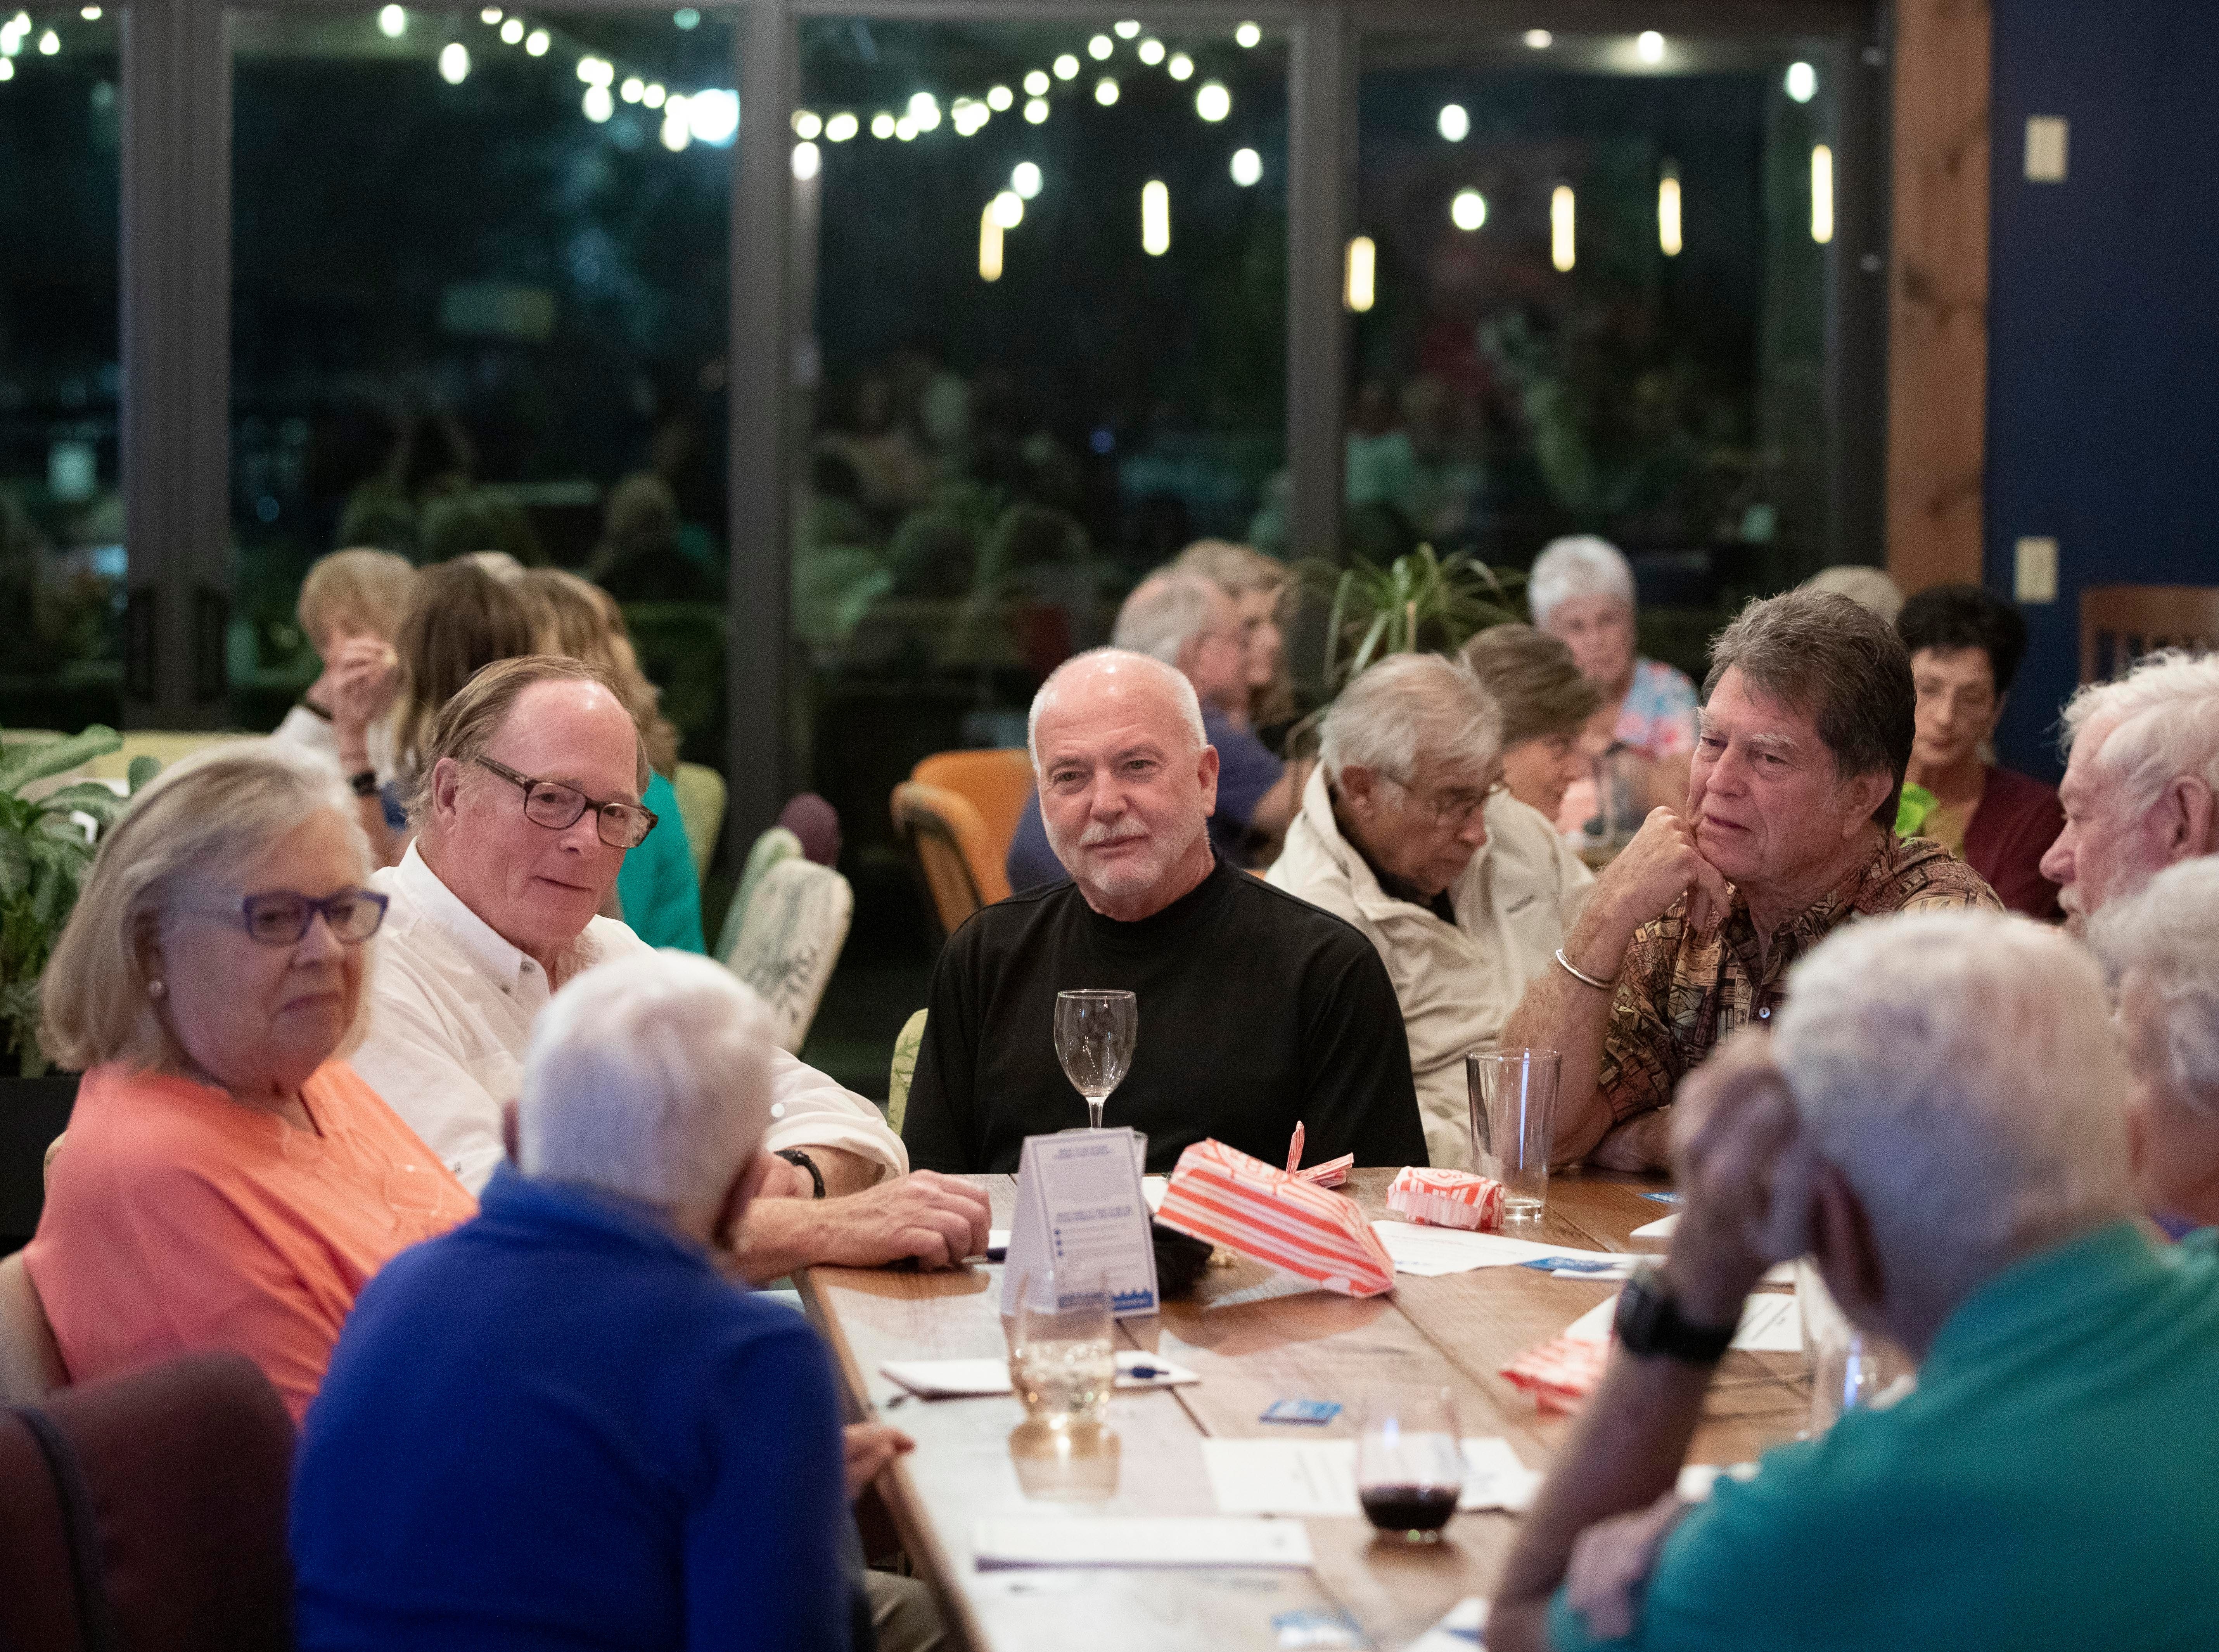 """""""It's greed that destroys the environment and when Florida loses its environment, it loses its economy,"""" said Bill Martz (center), of Port St. Lucie, who discusses water quality during TCPalm's inaugural Documentary & Drinks event on Tuesday, Feb. 12, 2019, at Ground Floor Farm in Stuart. They showed the 24-minute film, """"A State in Transition,"""" which grew out of TCPalm's Florida Voices project. Visuals journalist Leah Voss and opinion/audience engagement editor Eve Samples interviewed 22 Floridians from across the state about the issues most important to them during this crucial time in Florida's history. The watch party included time for questions and community conversation."""